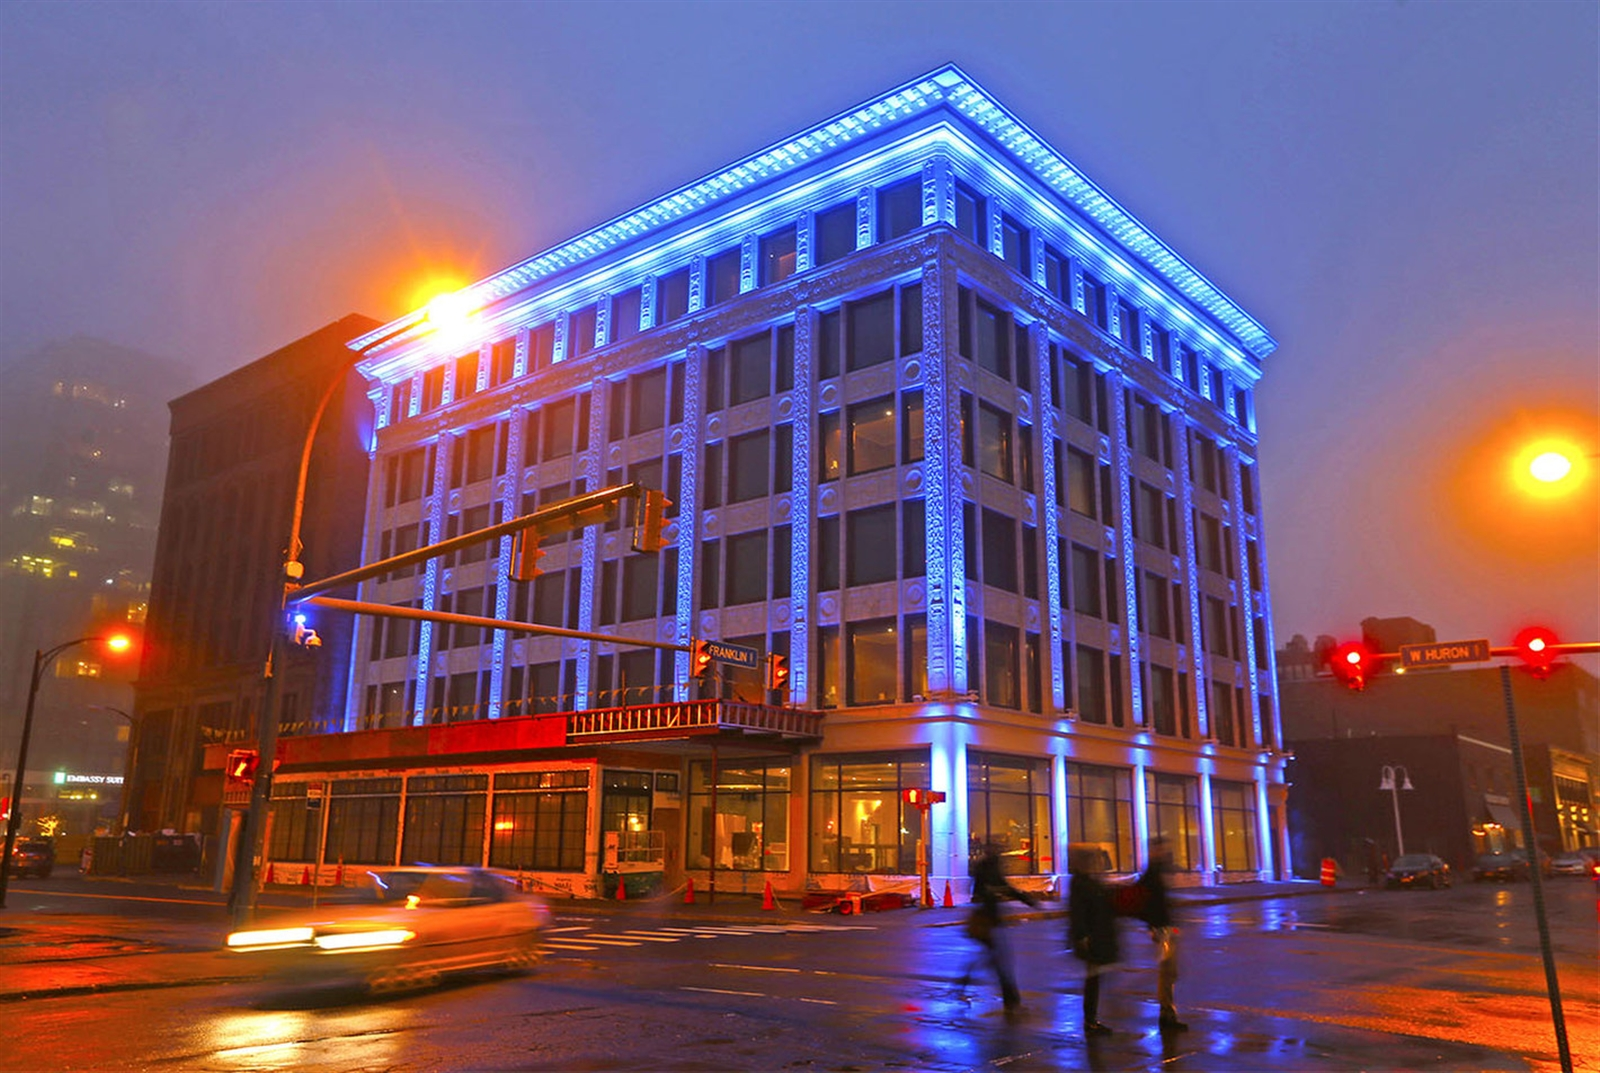 The exterior lighting, rotating through a rainbow of colors, has been drawing attention to the Curtiss Hotel, a former office building at Franklin Street and West Huron.